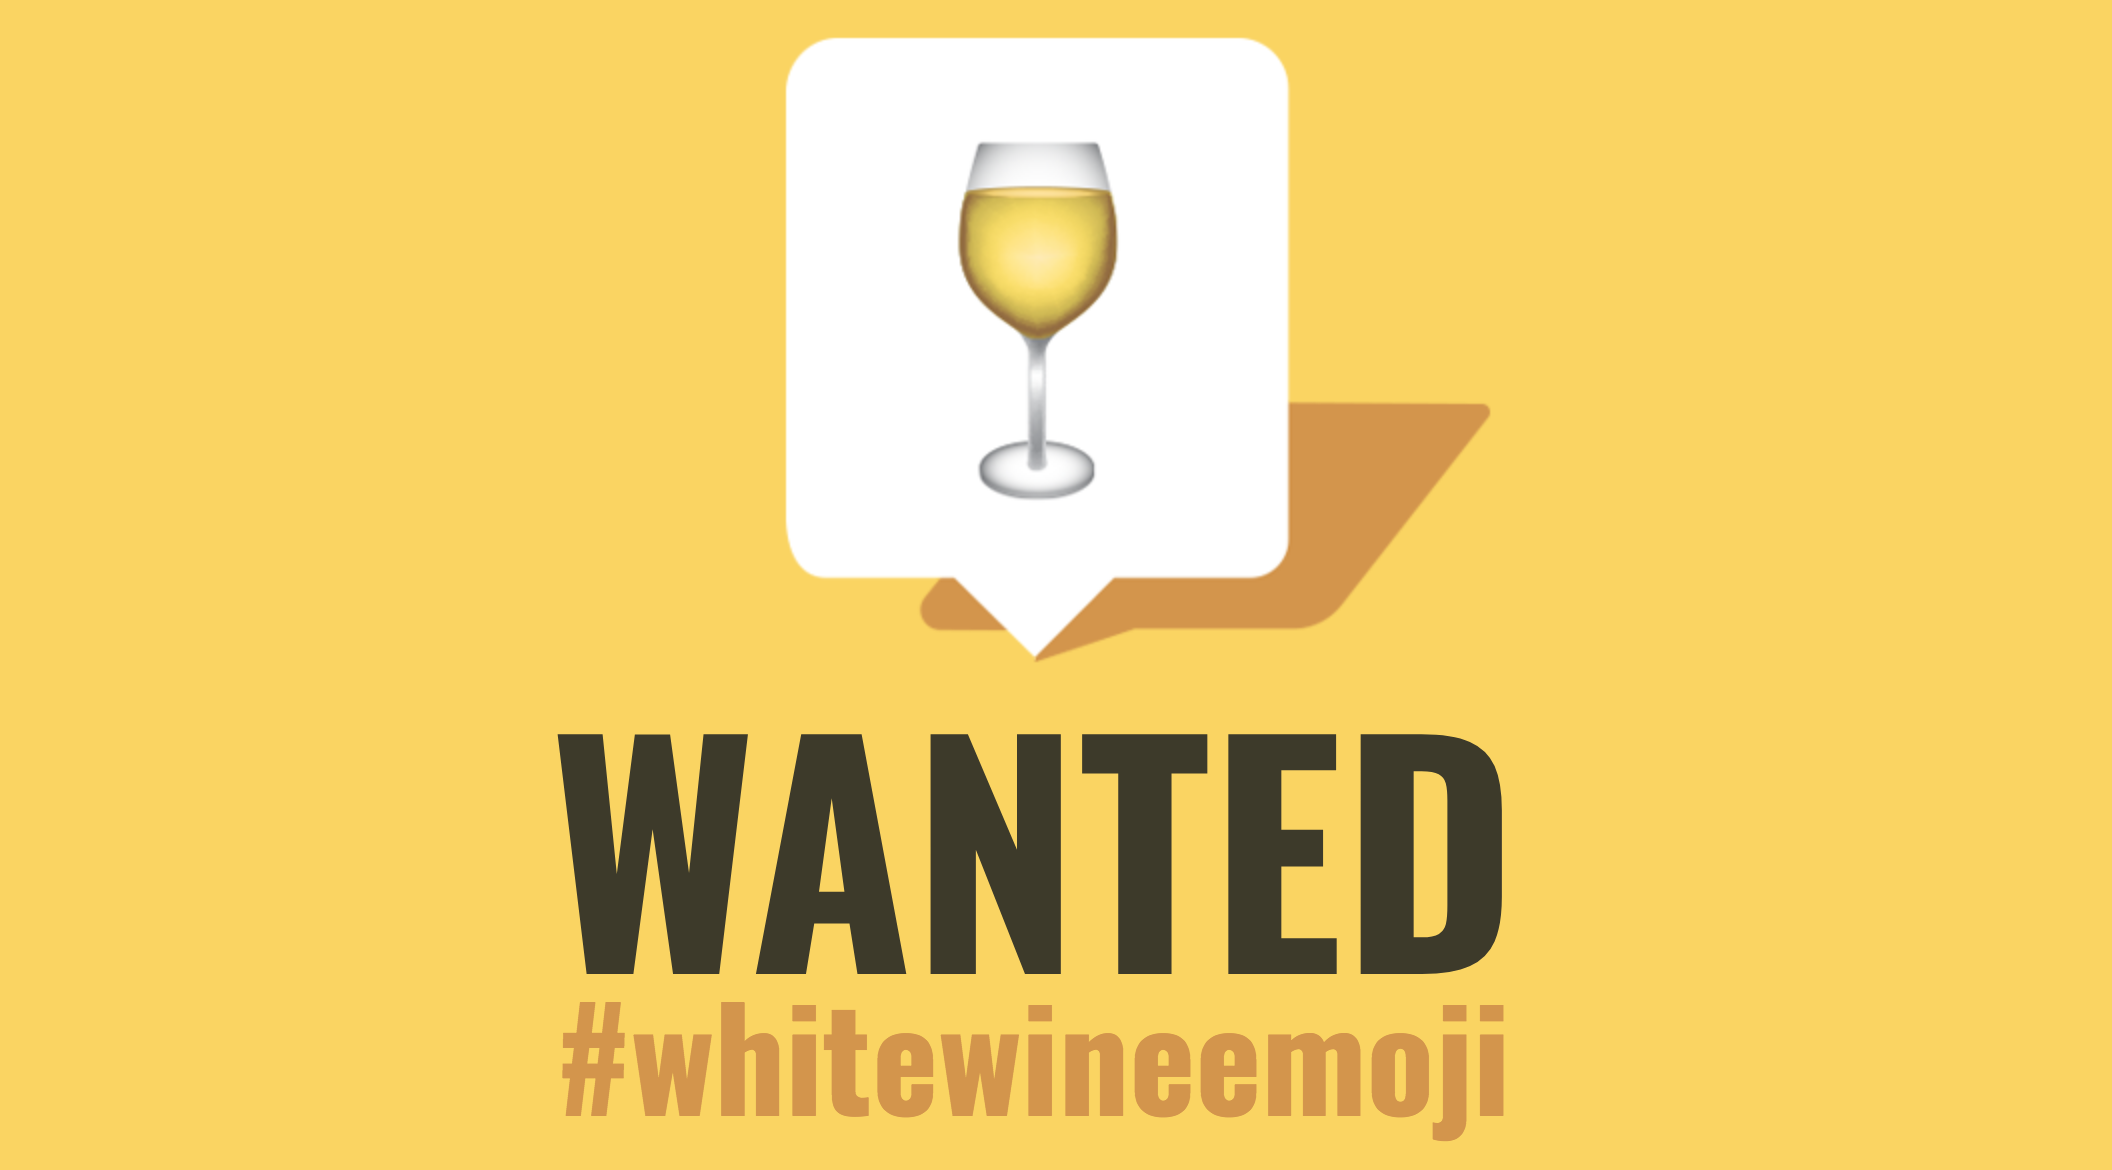 This company submitted a 15-page proposal for a white wine emoji, and we get it